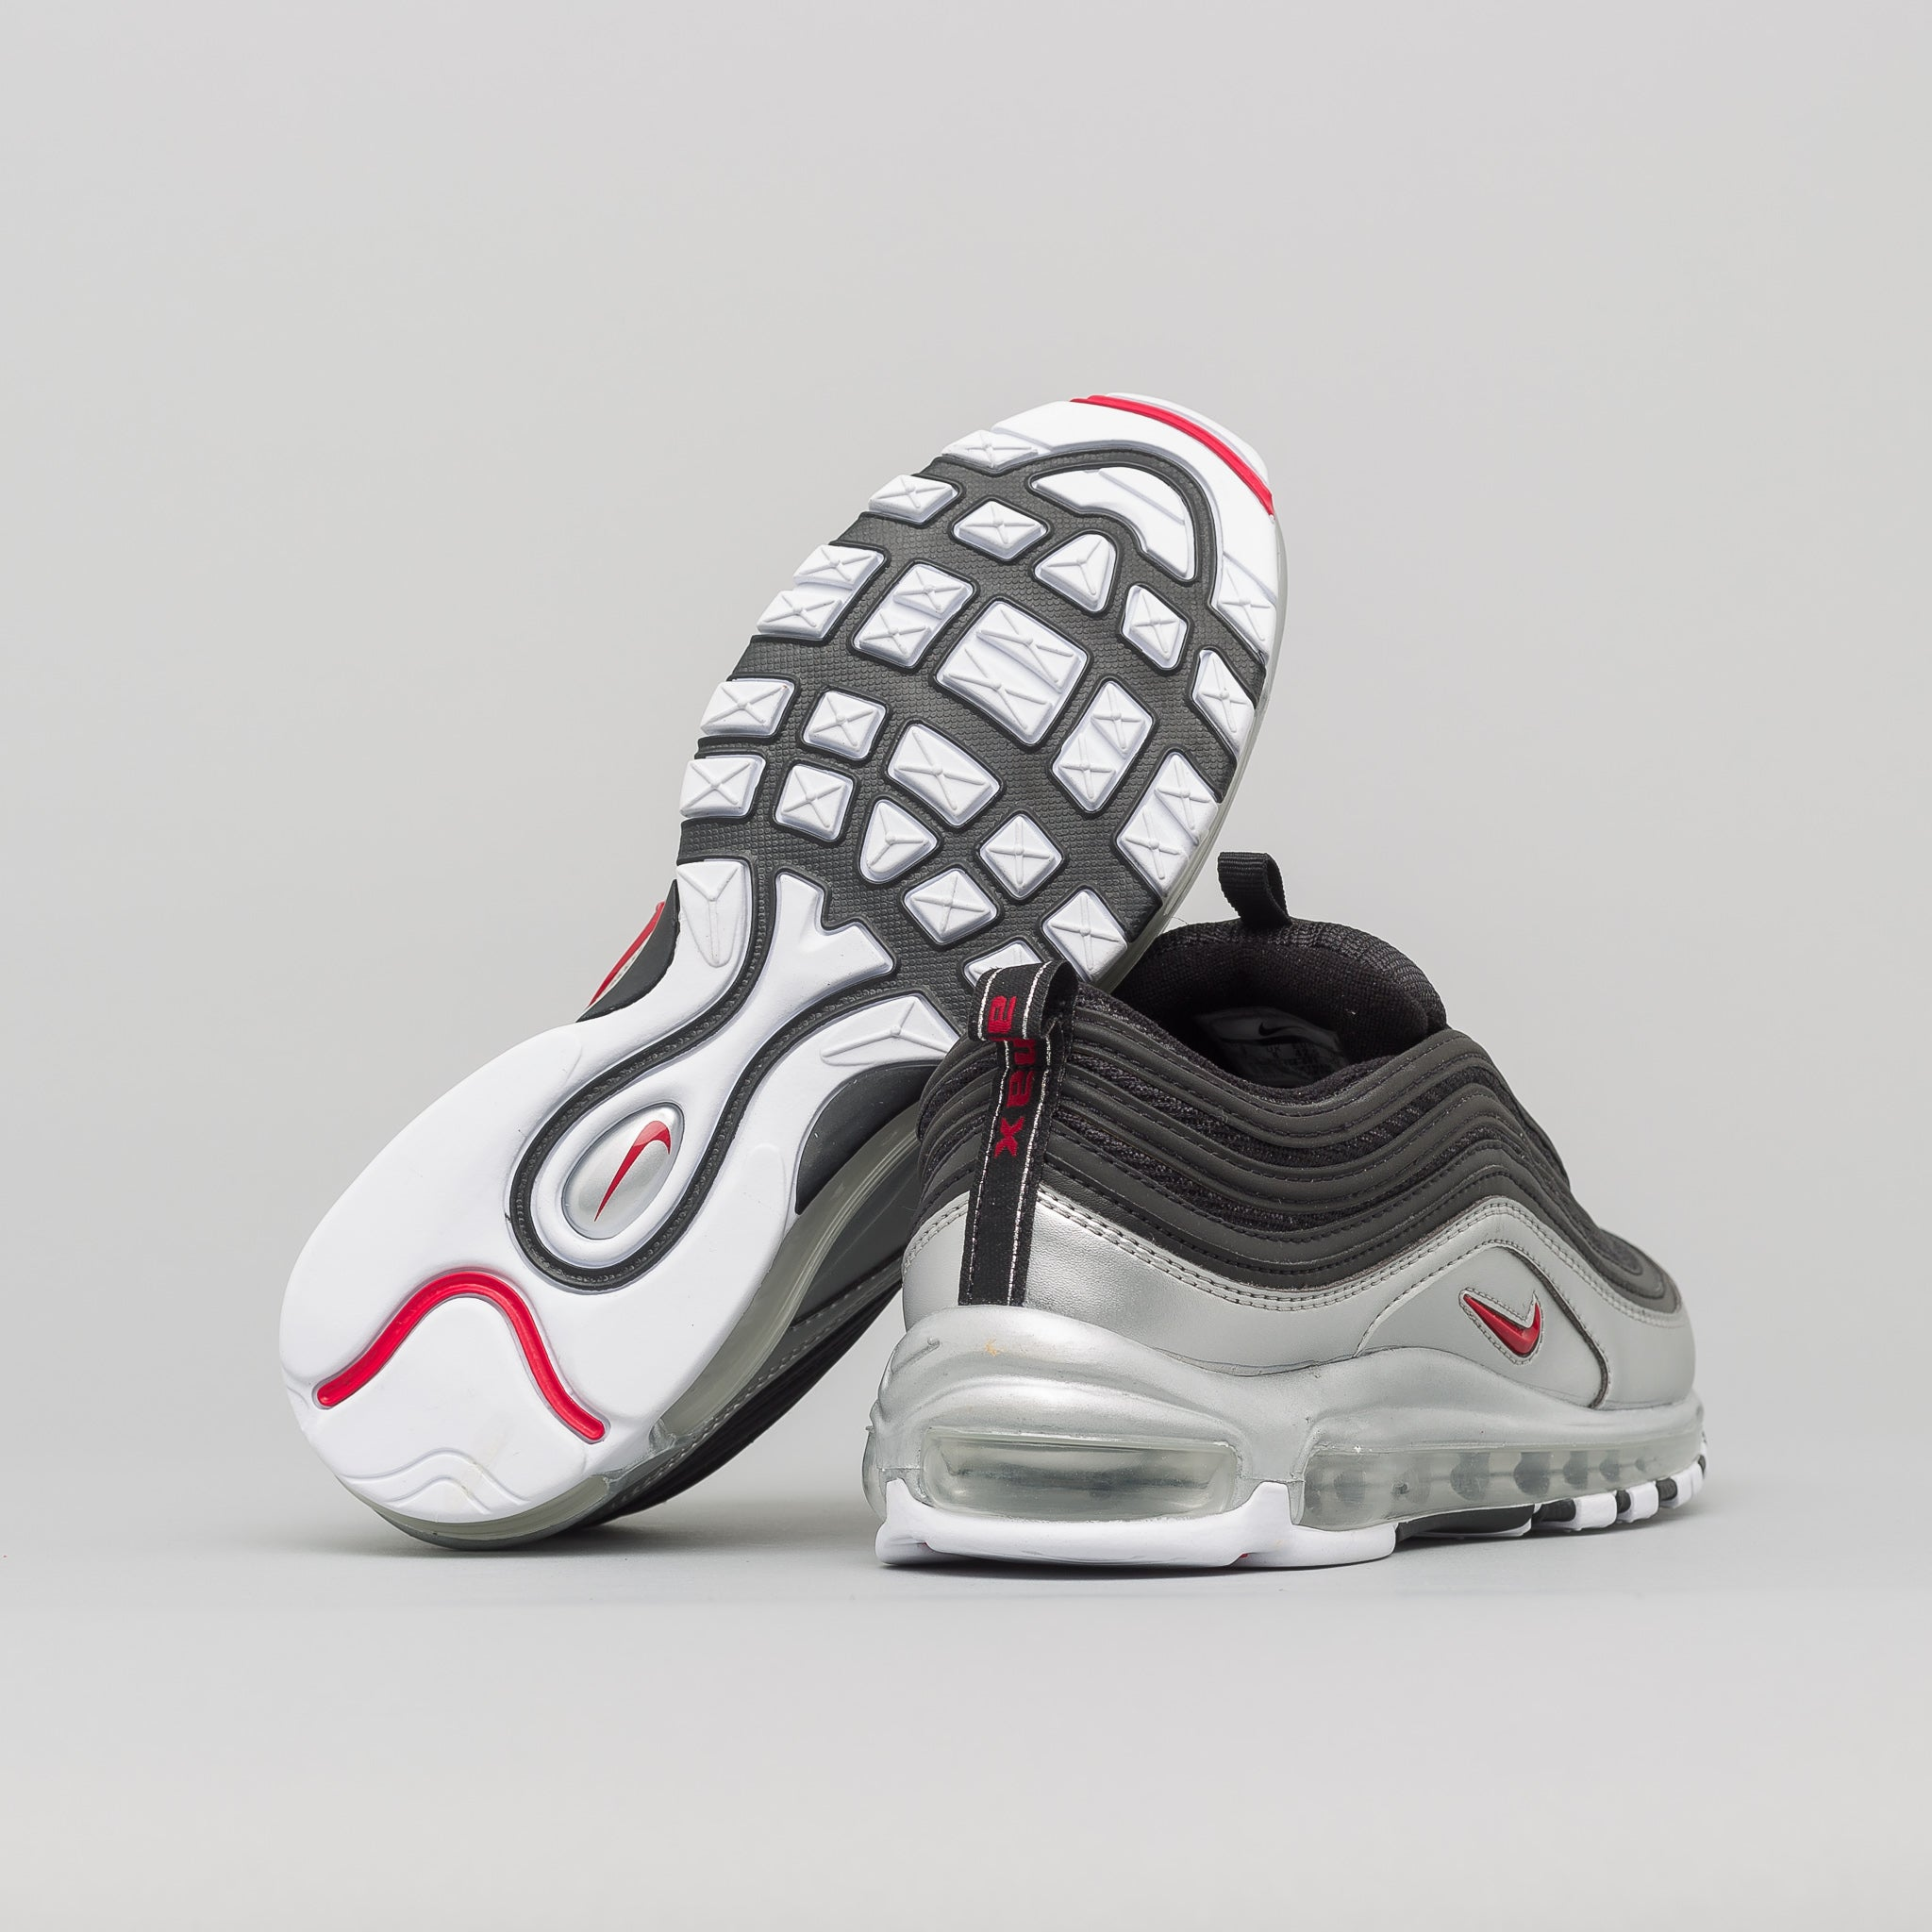 Air Max 97 QS in Black/Silver